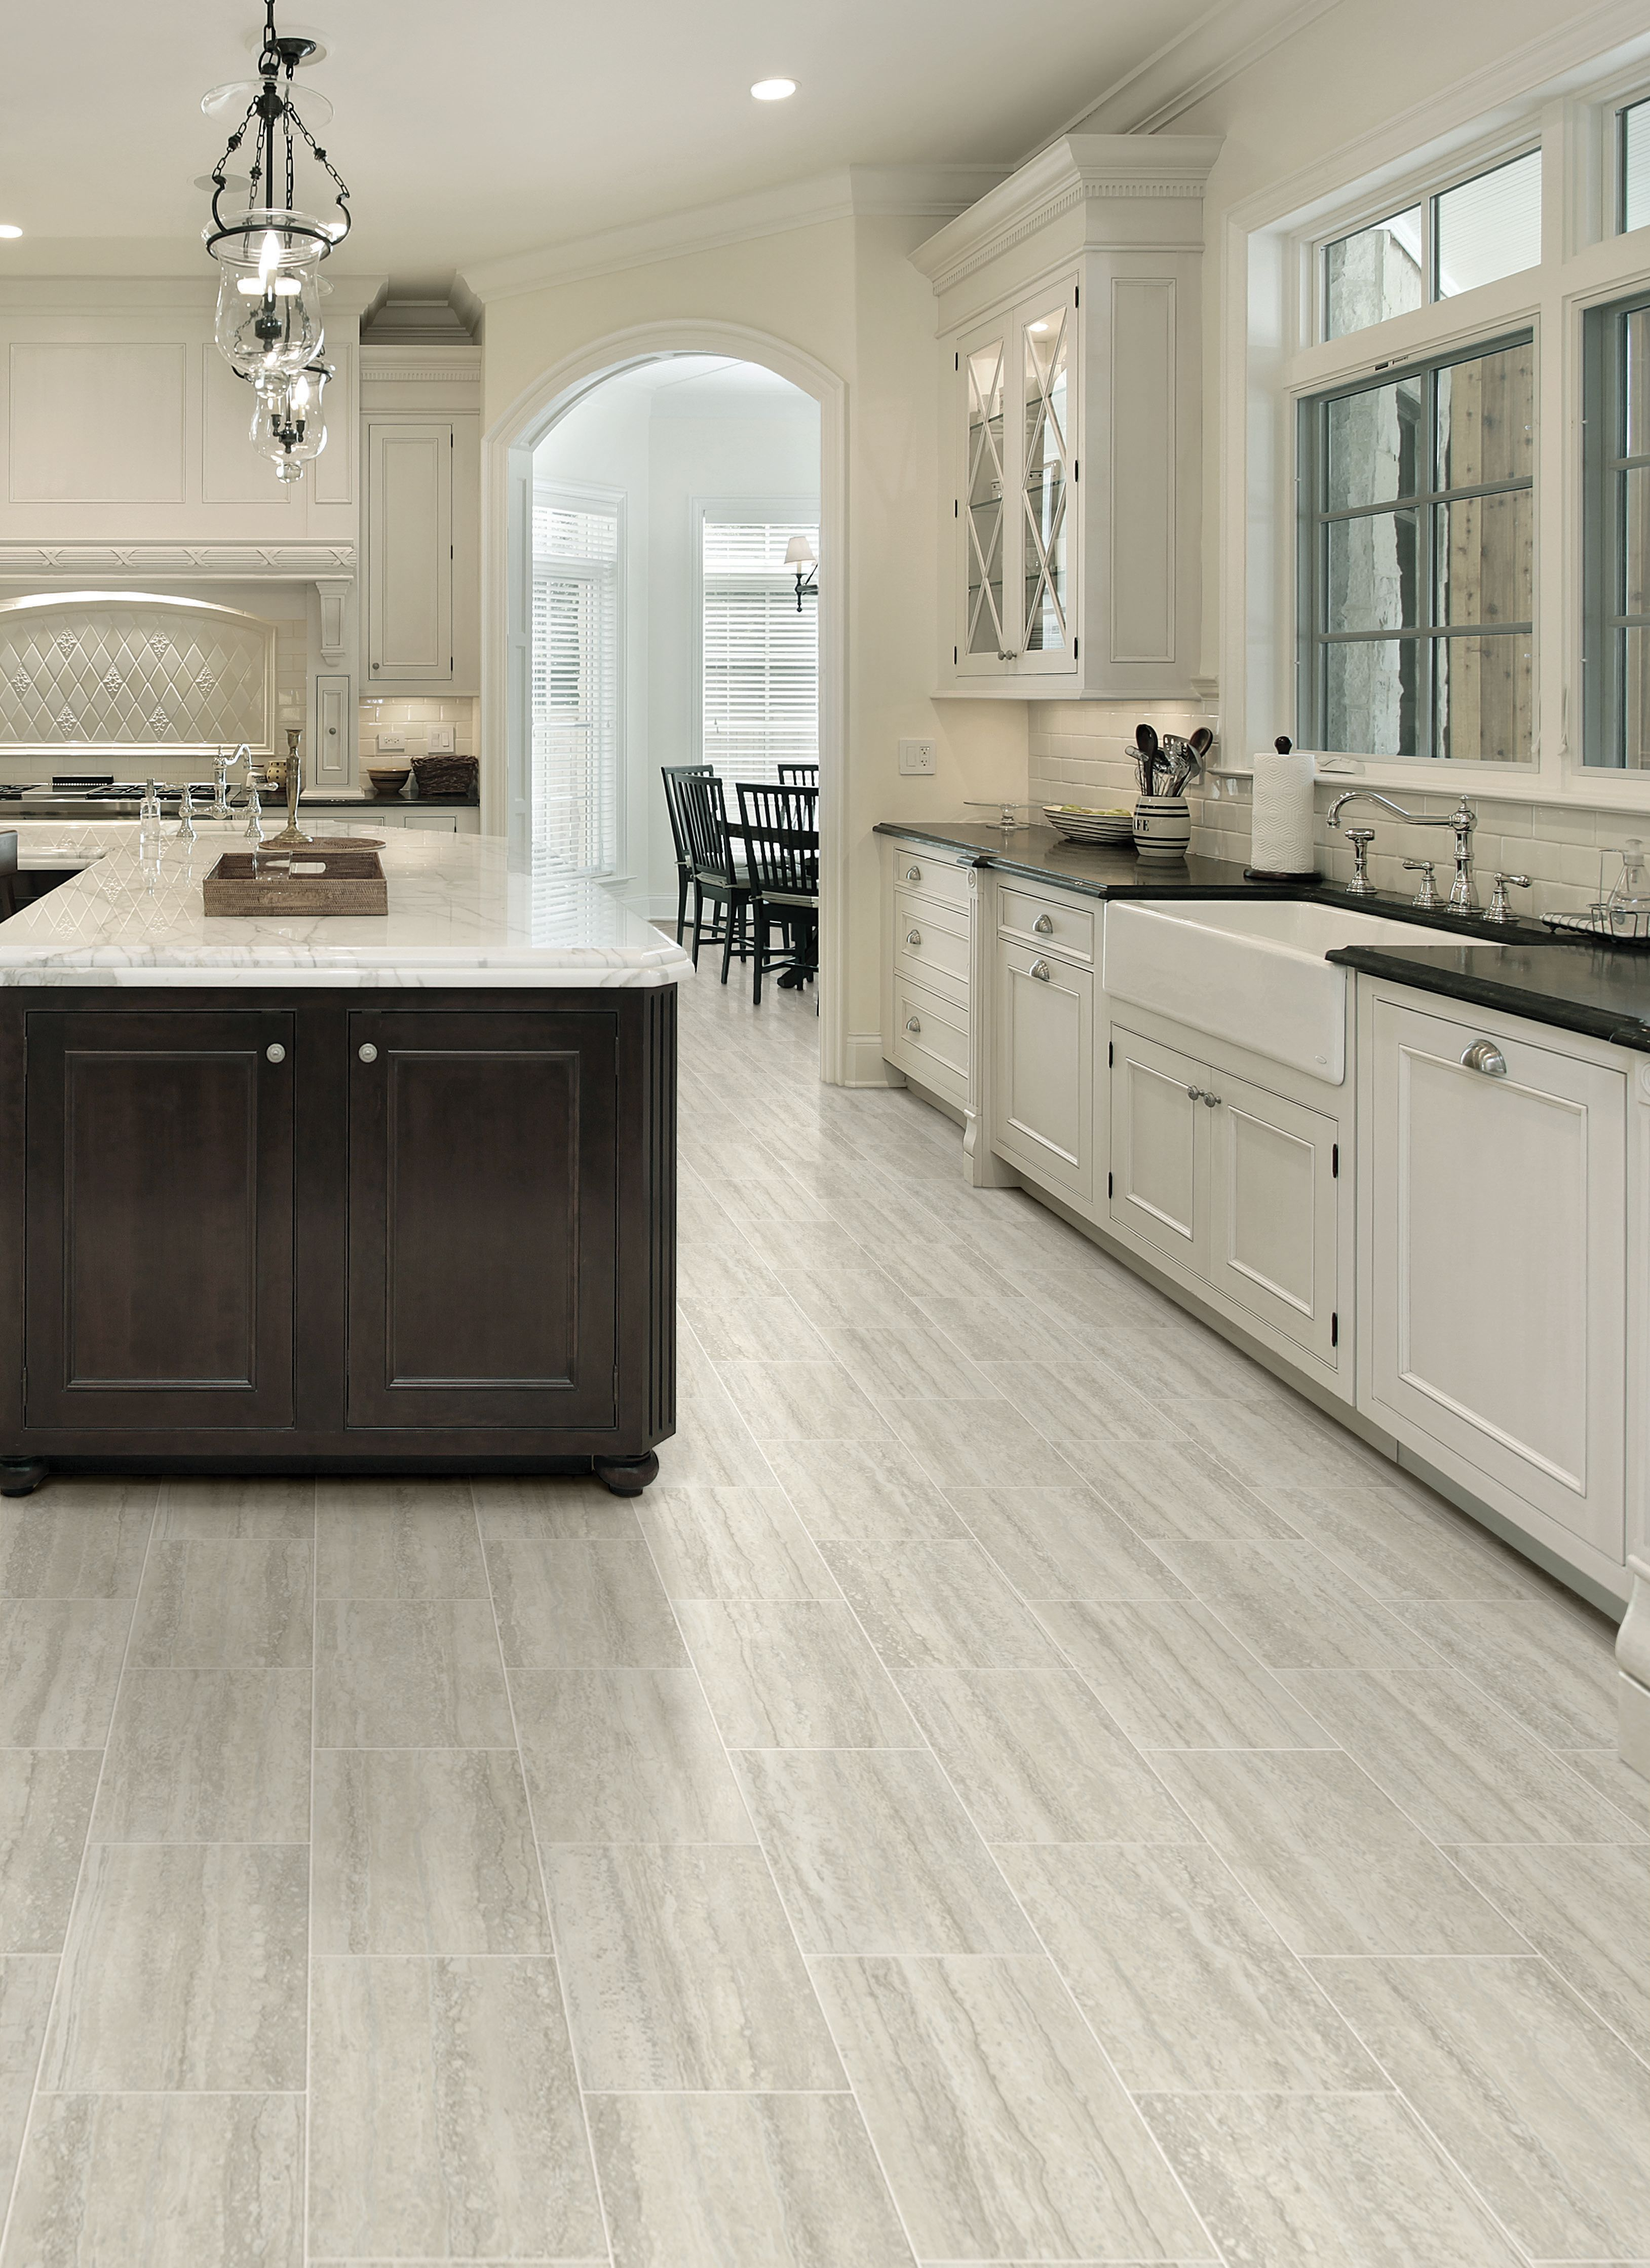 Kitchen Vinyl Wall Backsplash Modernize Your With Durable And Comfortable Sheet